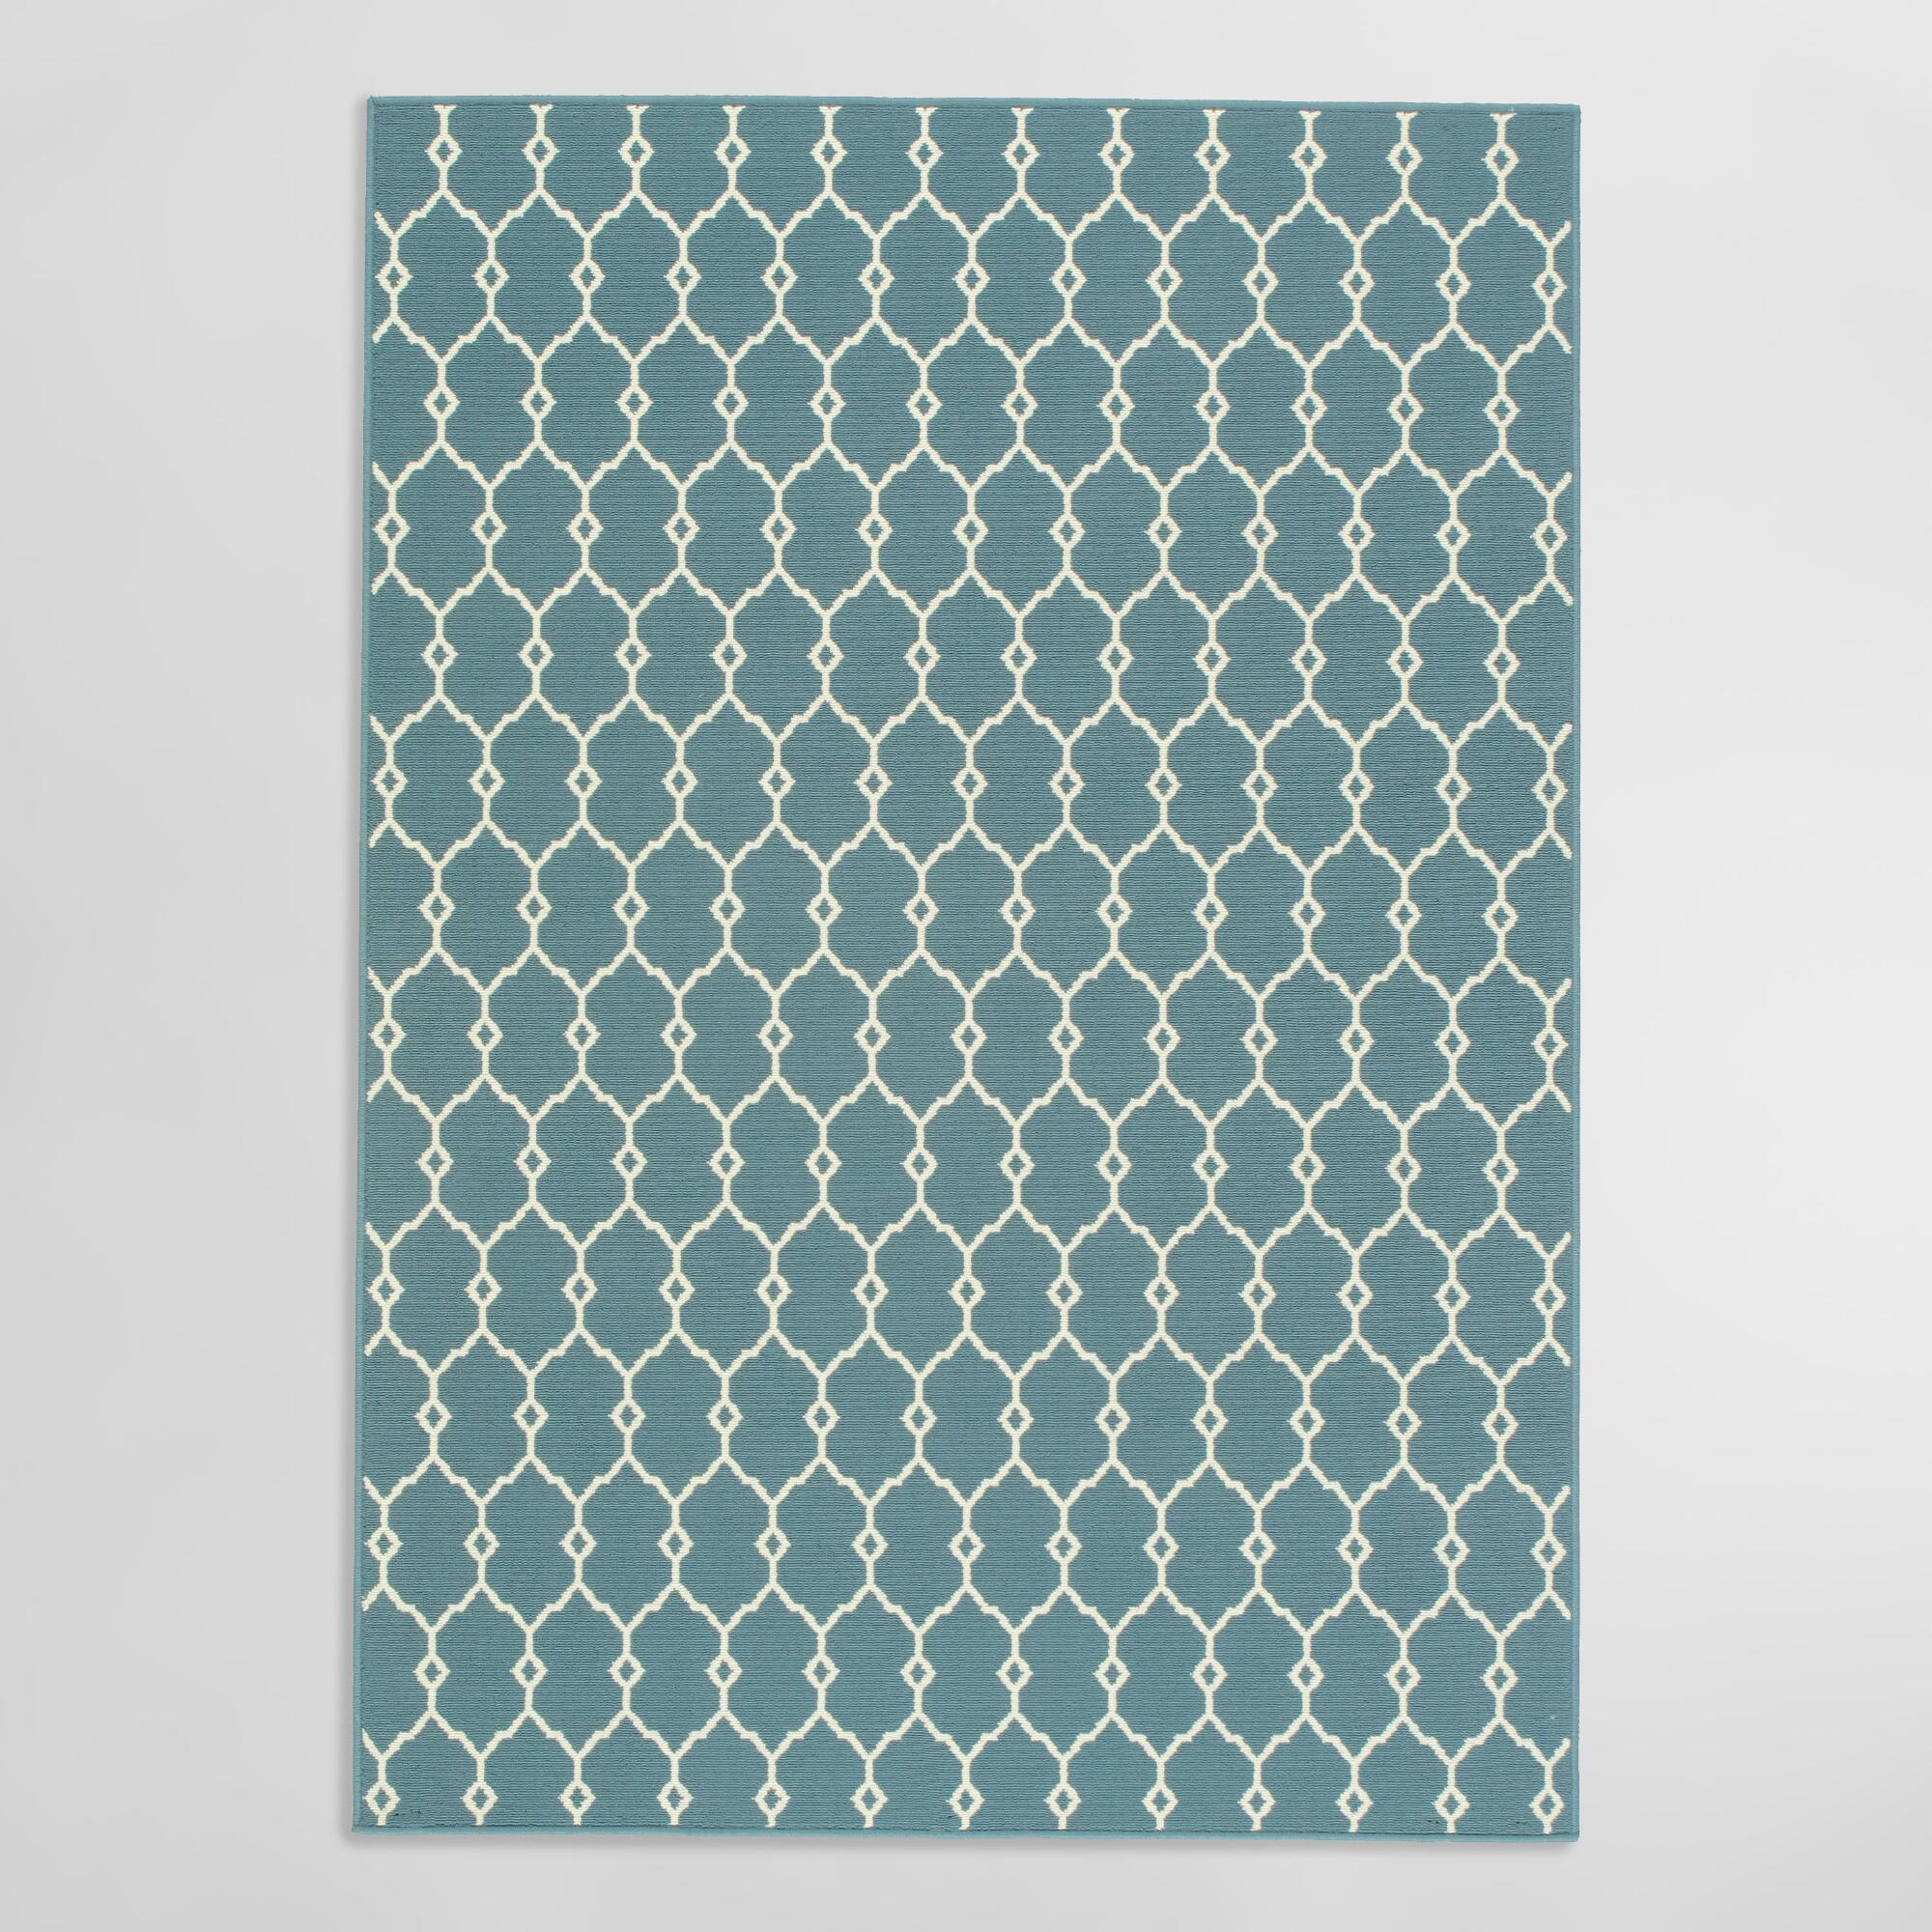 Blue Lace Indoor Outdoor Patio Area Rug - 2.3Ftx4.6Ft by World Market 2.3Ftx4.6Ft